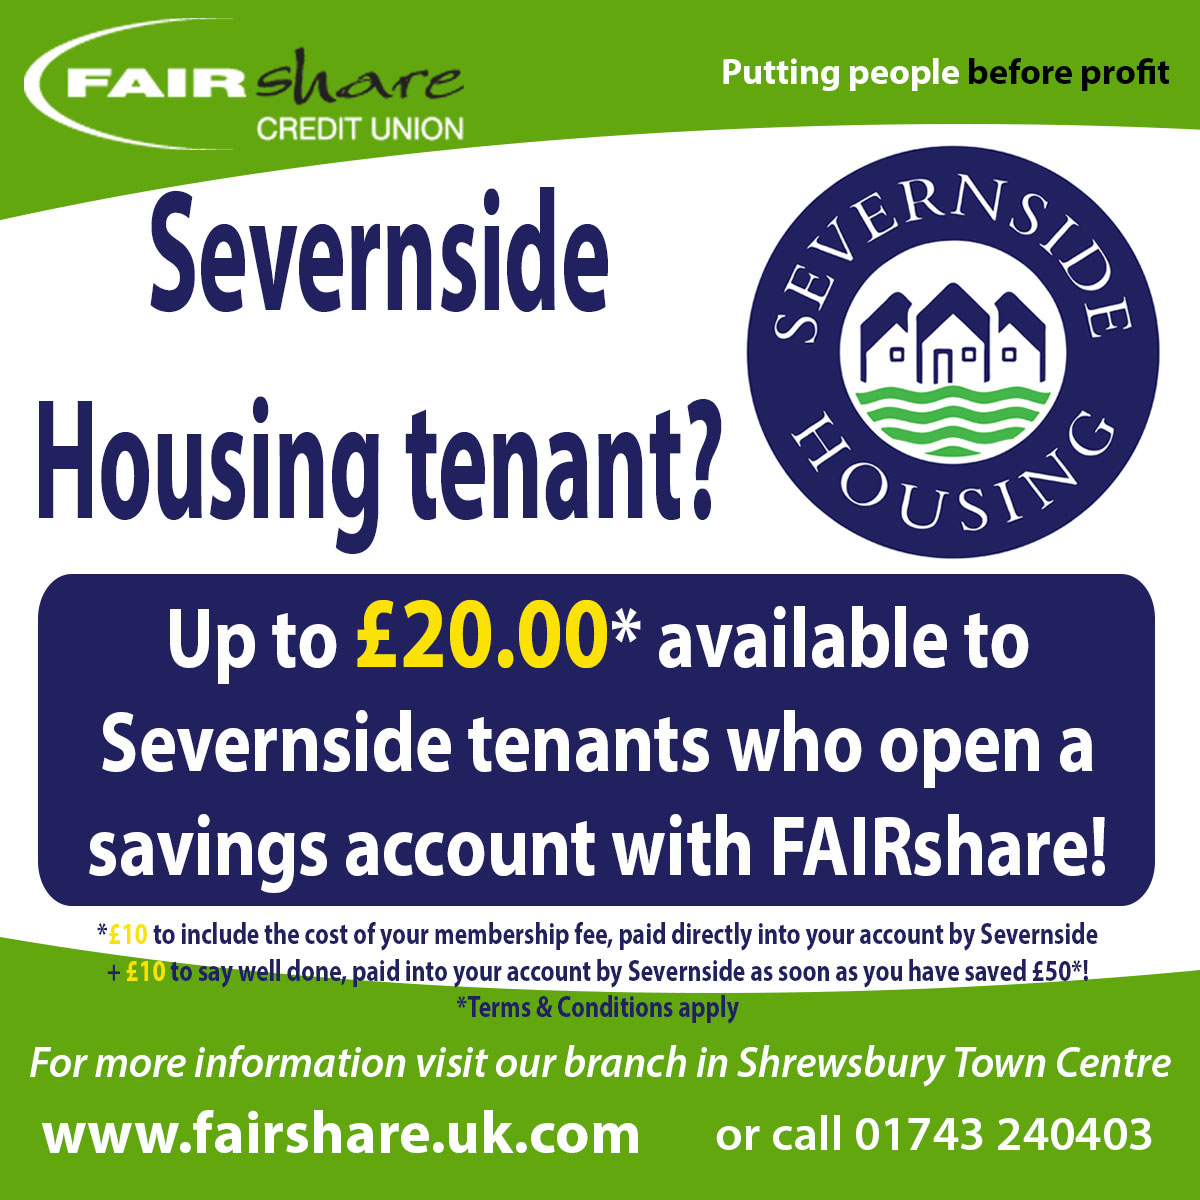 Partners Credit Union Branch: Are You A Tenant Of Severnside Housing?